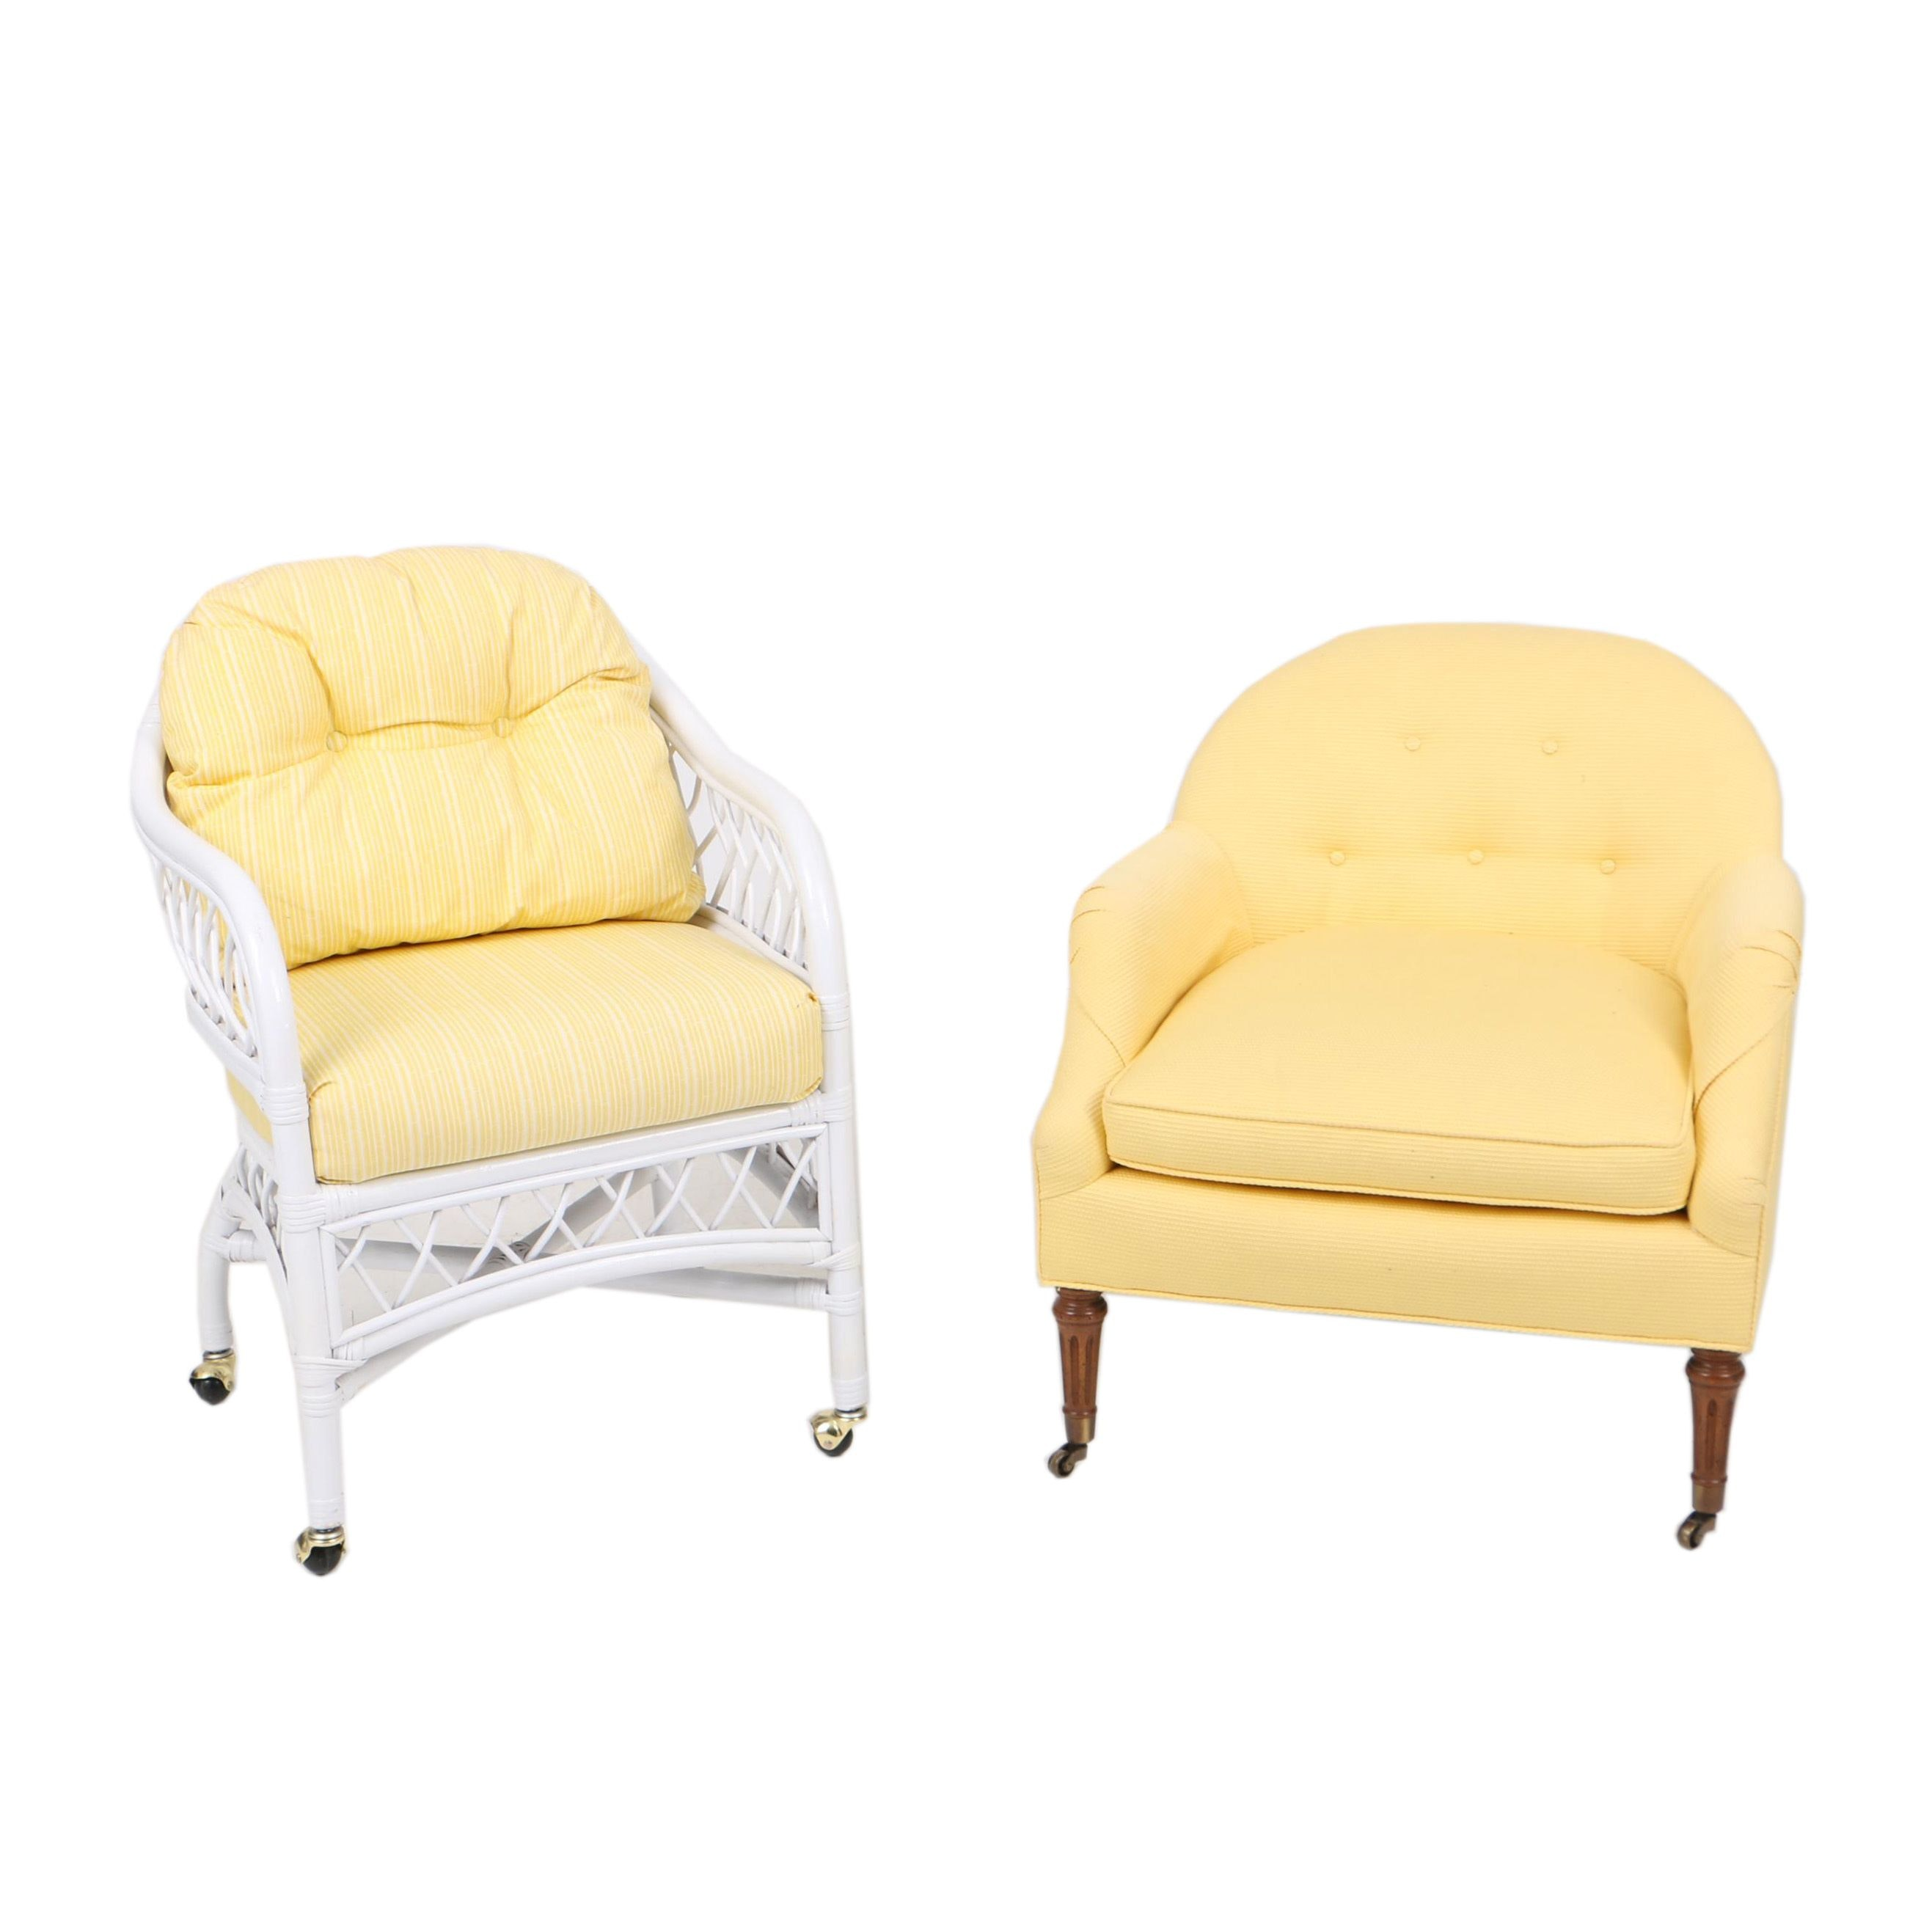 Two Yellow-Upholstered Armchairs, Including Henry Link